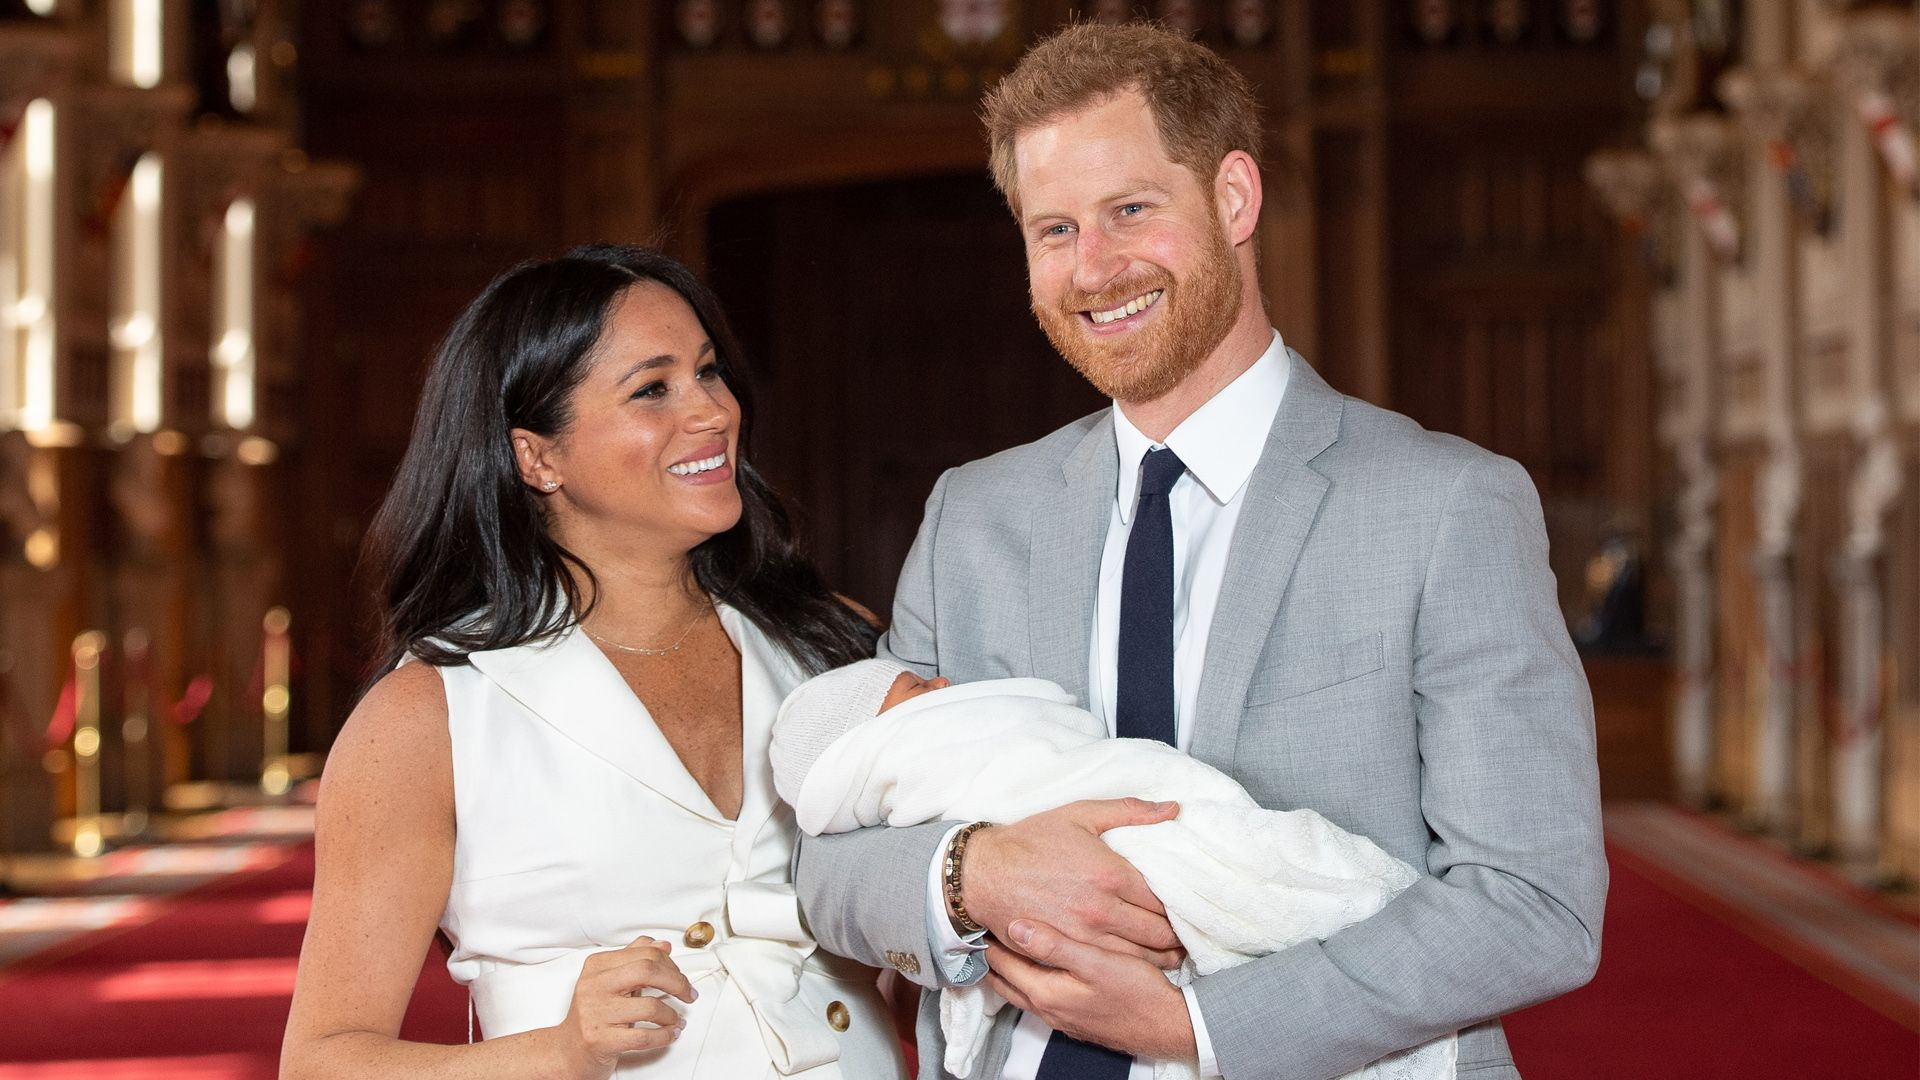 Meghan Markle and Prince Harry Are Reportedly Planning to Bring Baby Archie on a Royal Visit to South Africa